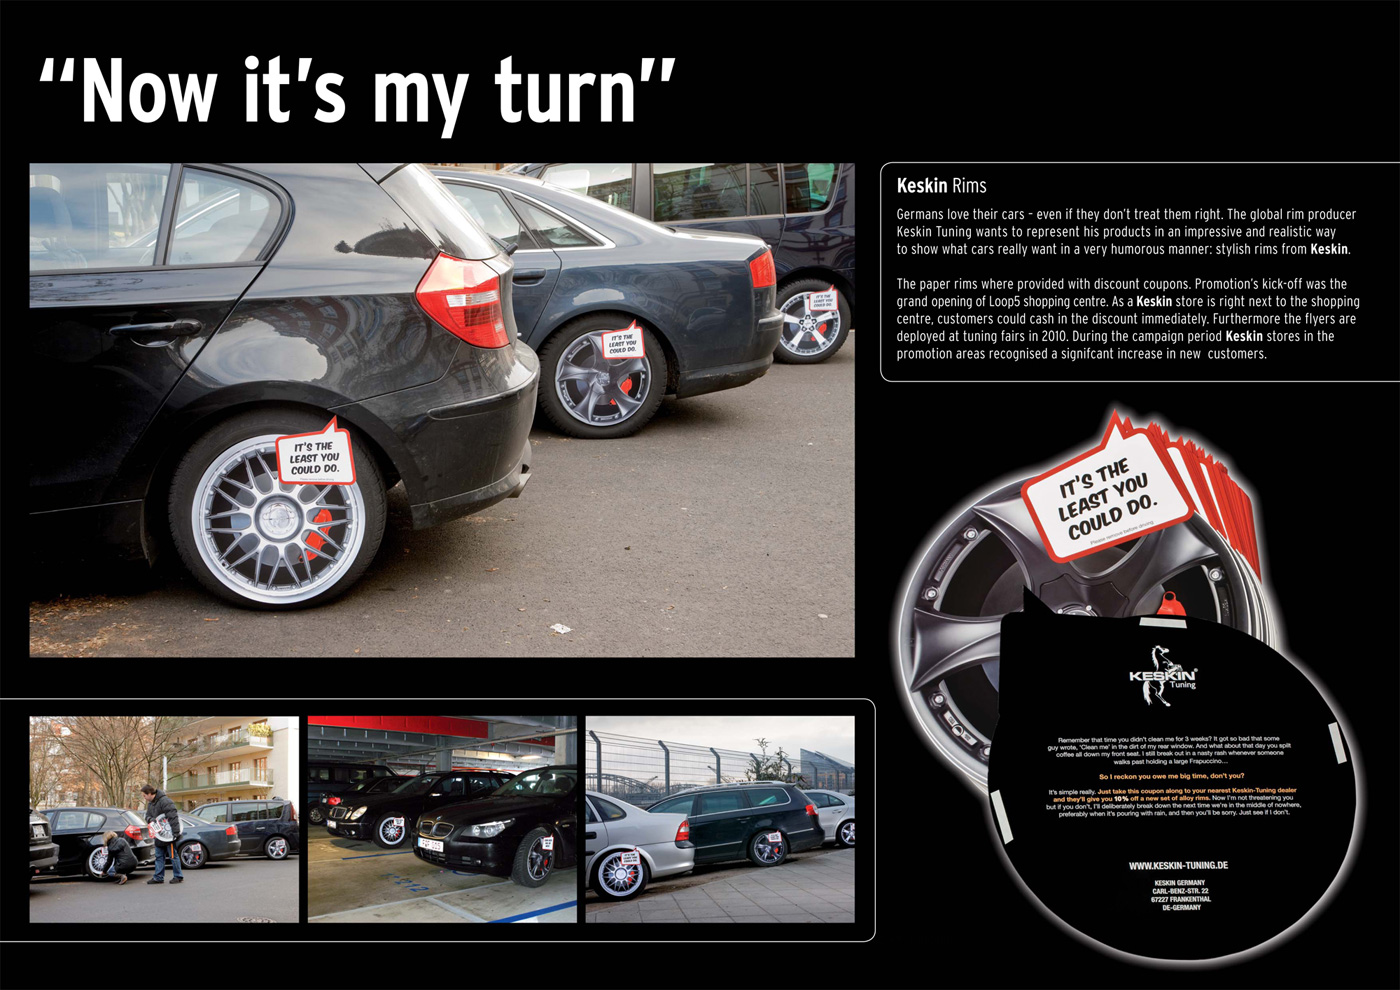 Keskin Ambient Advert By Saatchi Saatchi Rims Guerrilla Ads Of - Show me rims on my car